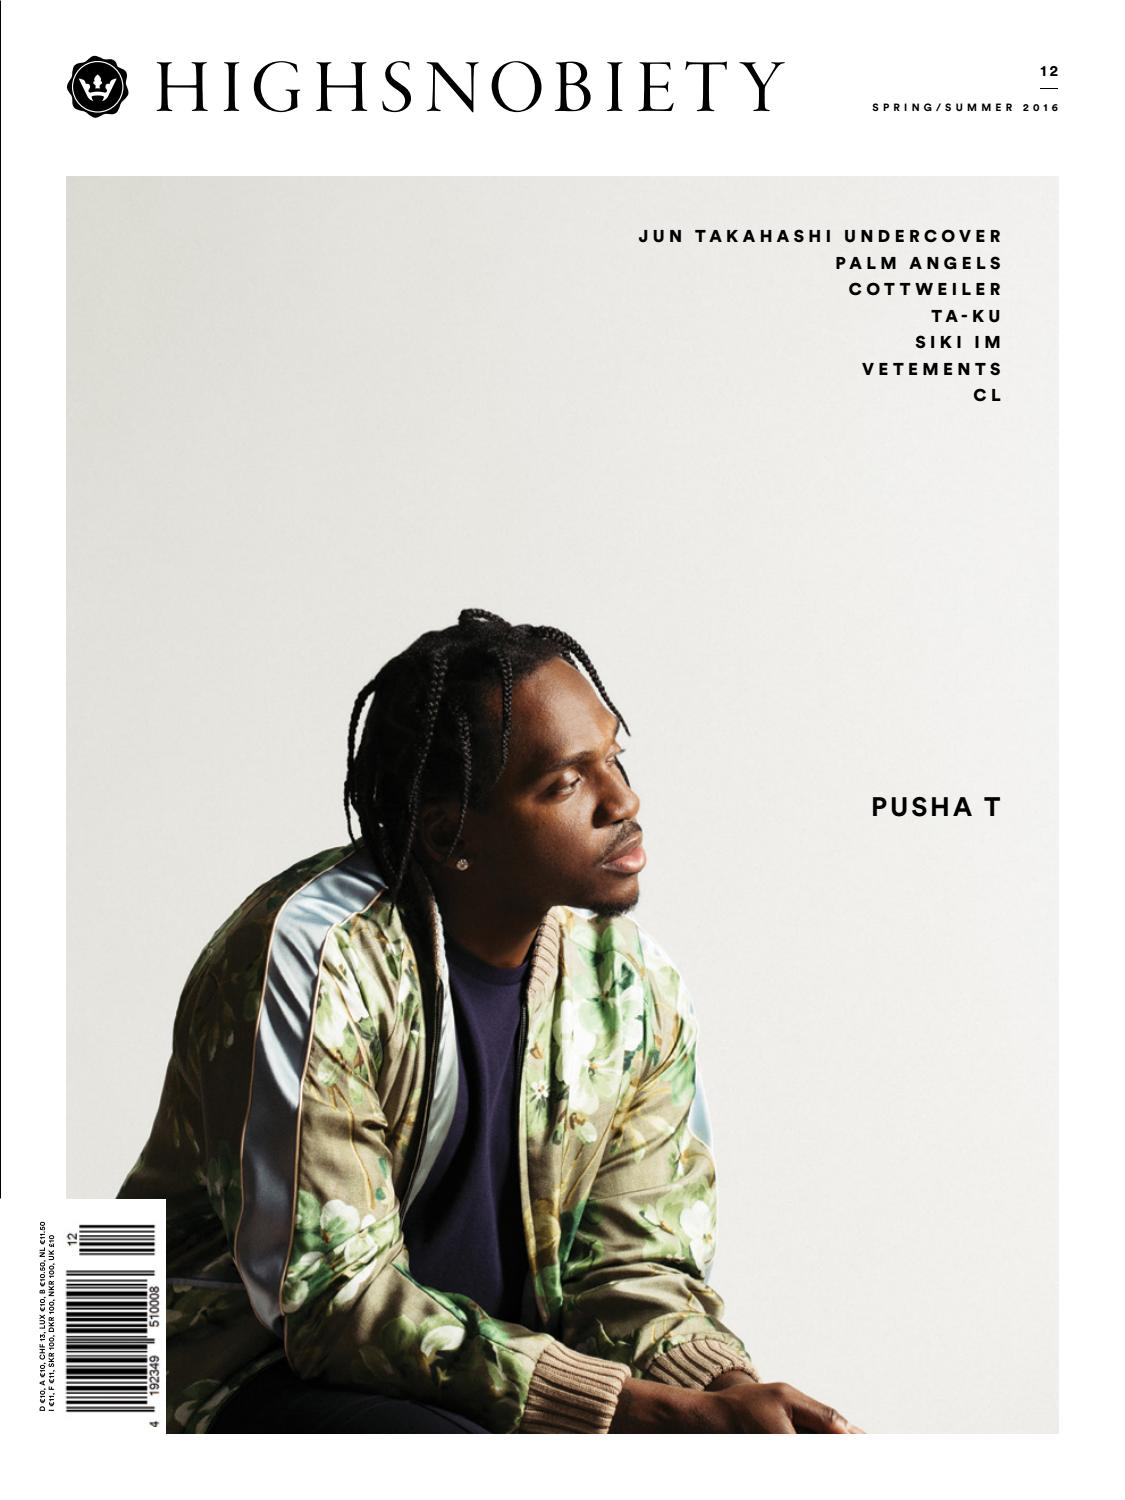 ebab81a5eaf8 Highsnobiety Magazine 12 - Summer 2016 by HIGHSNOBIETY - issuu